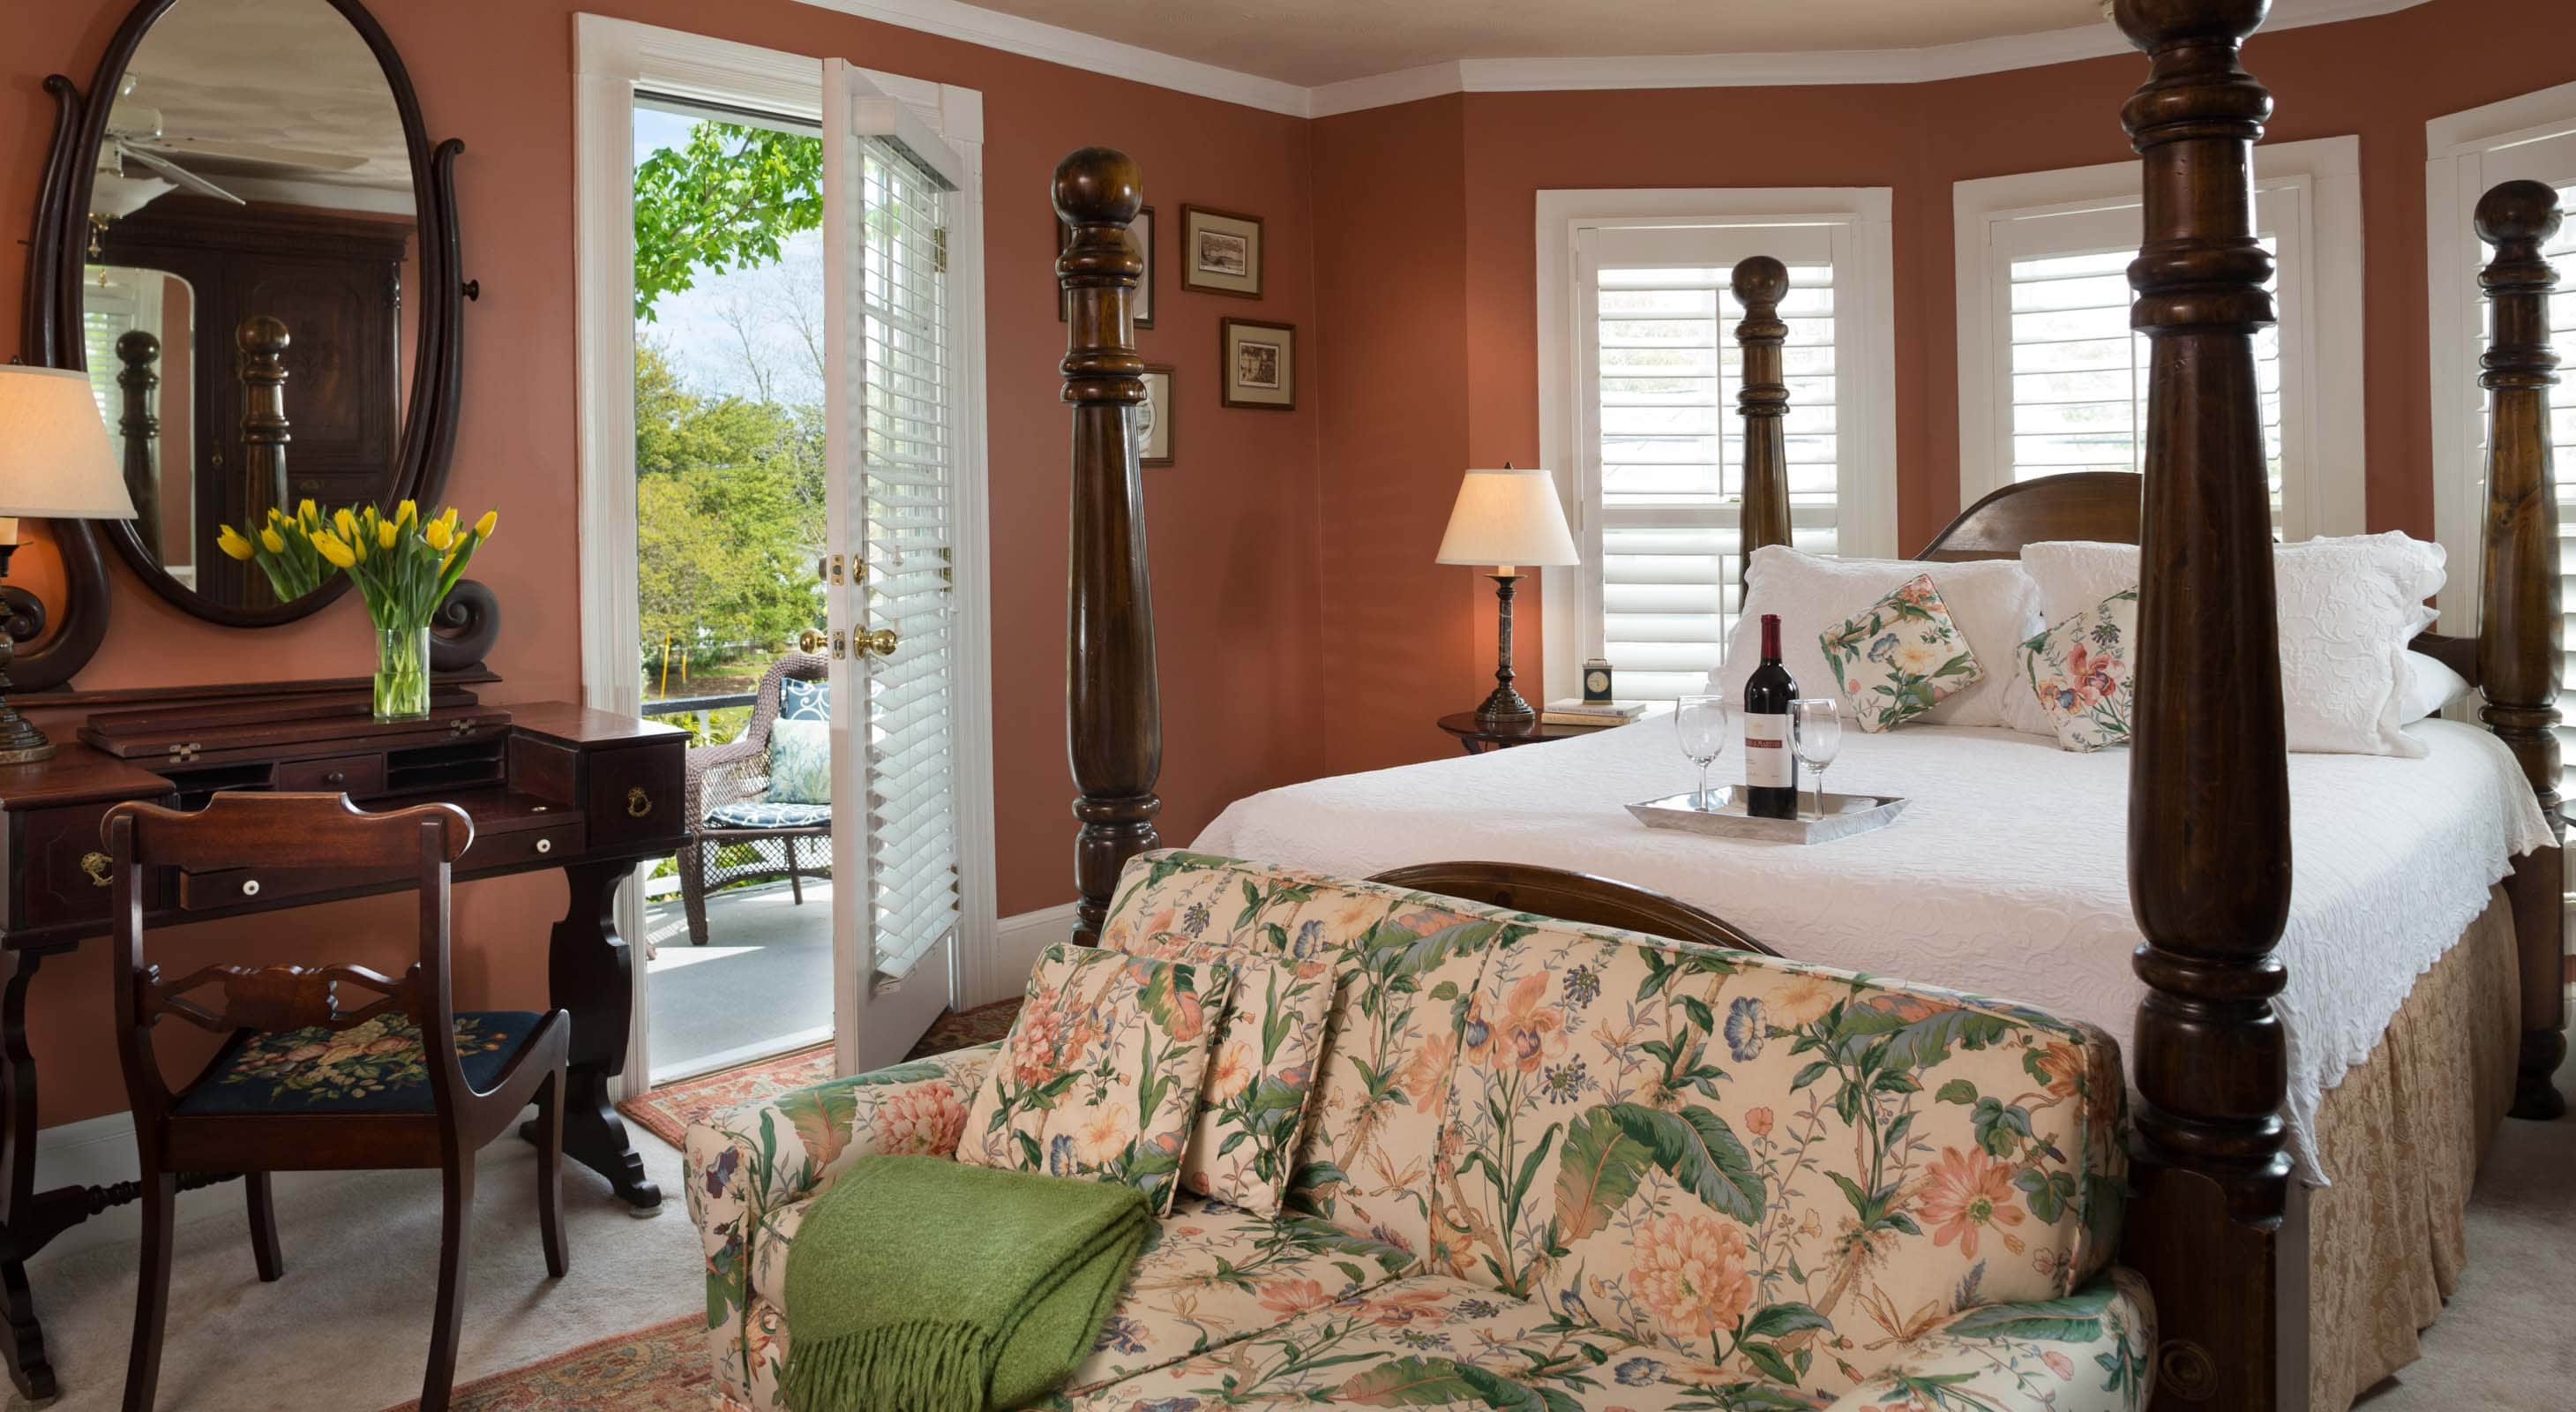 Raleigh room at White Doe Inn with a four poster queen bed, writing desk, and a door to private balcony